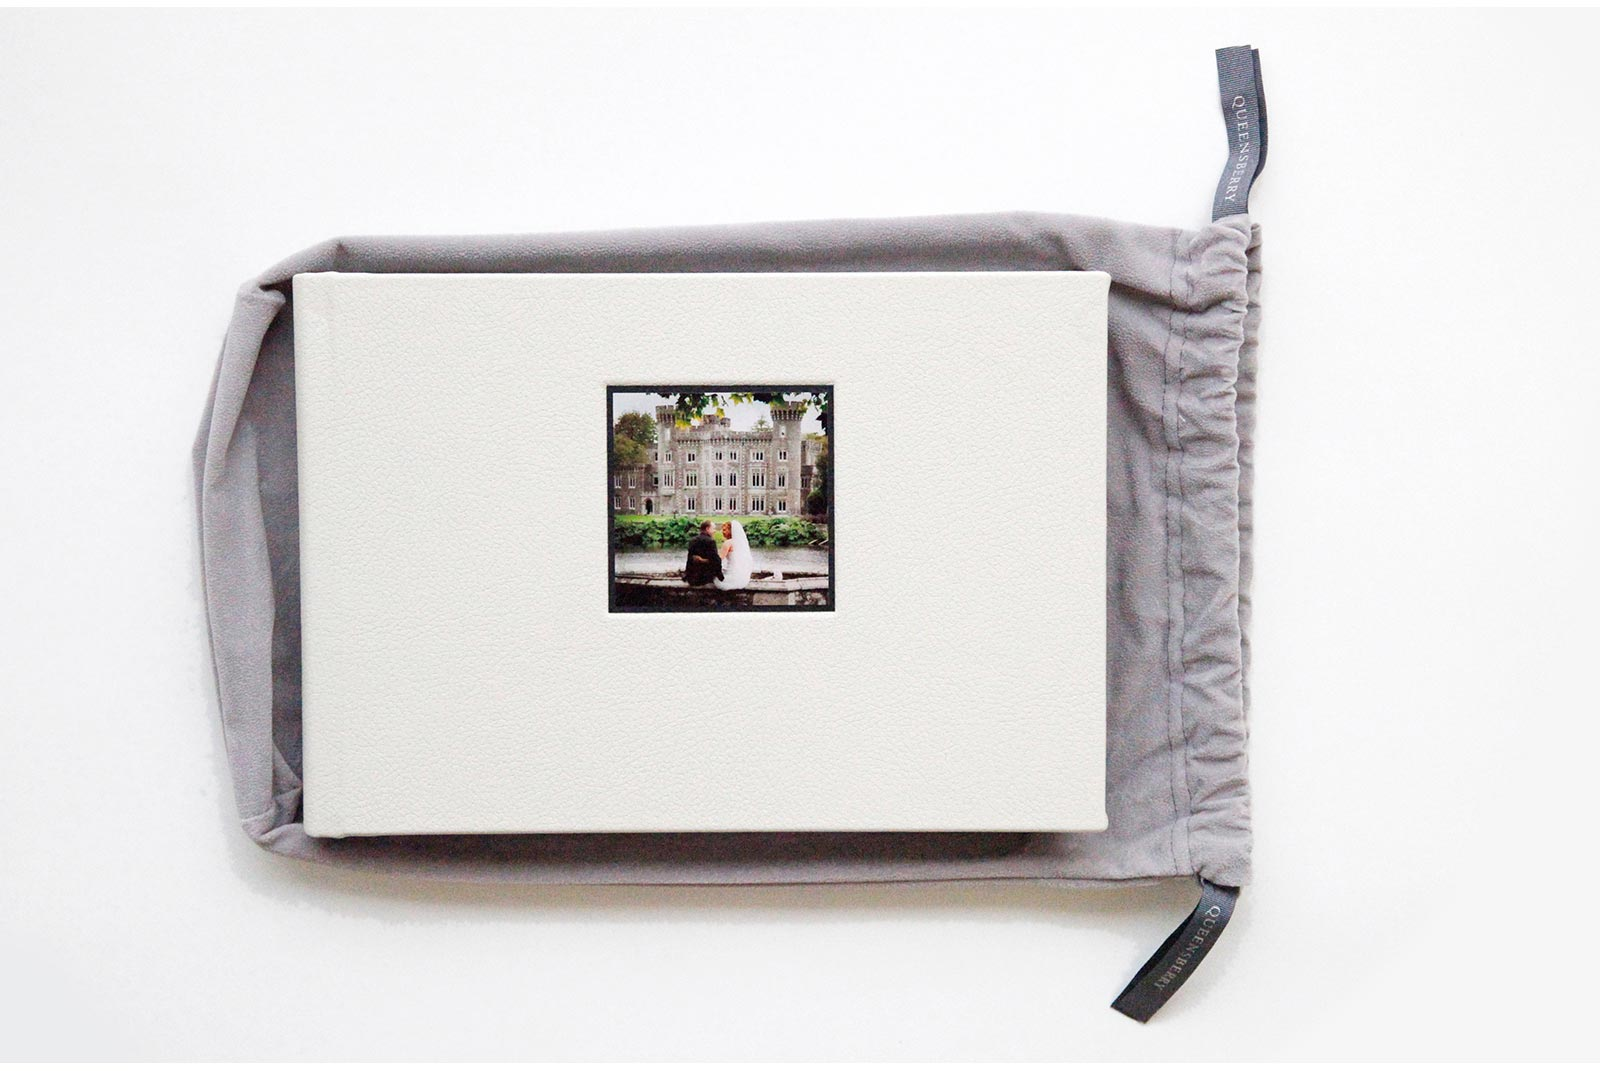 Small Queensberry wedding album wiht an eggshell micro leather cover and square photograph